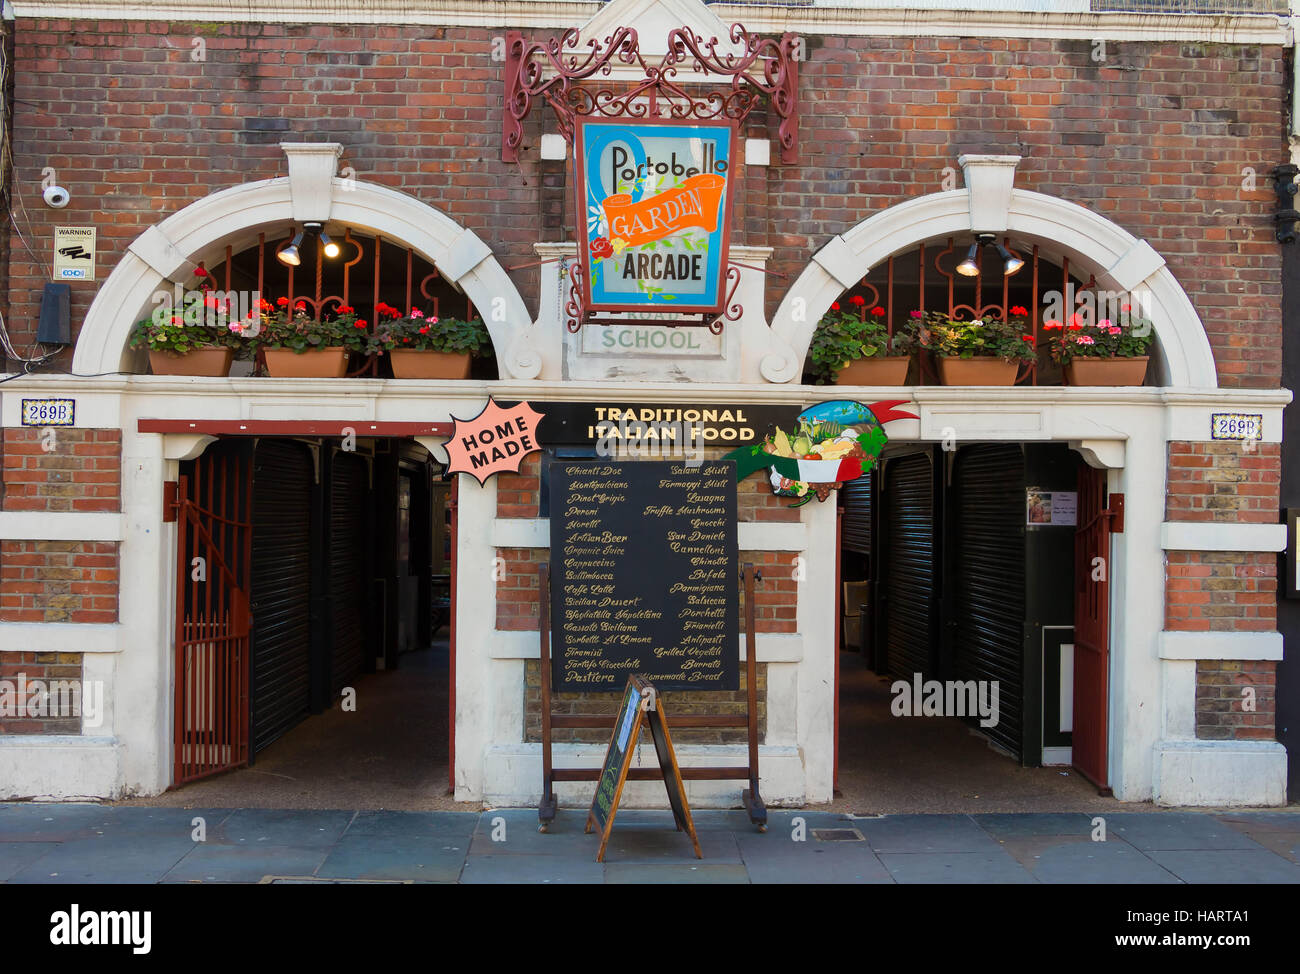 Pleasant Italian Restaurant London Stock Photos  Italian Restaurant London  With Lovable London Englandnovember   The Portobello Garden Arcade Italian  Restaurant Located With Lovely Little Eaton Garden Centre Opening Times Also What Are The Benefits Of Gardening In Addition Cotes Covent Garden And In The Night Garden Making Of As Well As Directions To Kew Gardens Additionally Garden Furniture And Ornaments From Alamycom With   Lovable Italian Restaurant London Stock Photos  Italian Restaurant London  With Lovely London Englandnovember   The Portobello Garden Arcade Italian  Restaurant Located And Pleasant Little Eaton Garden Centre Opening Times Also What Are The Benefits Of Gardening In Addition Cotes Covent Garden From Alamycom